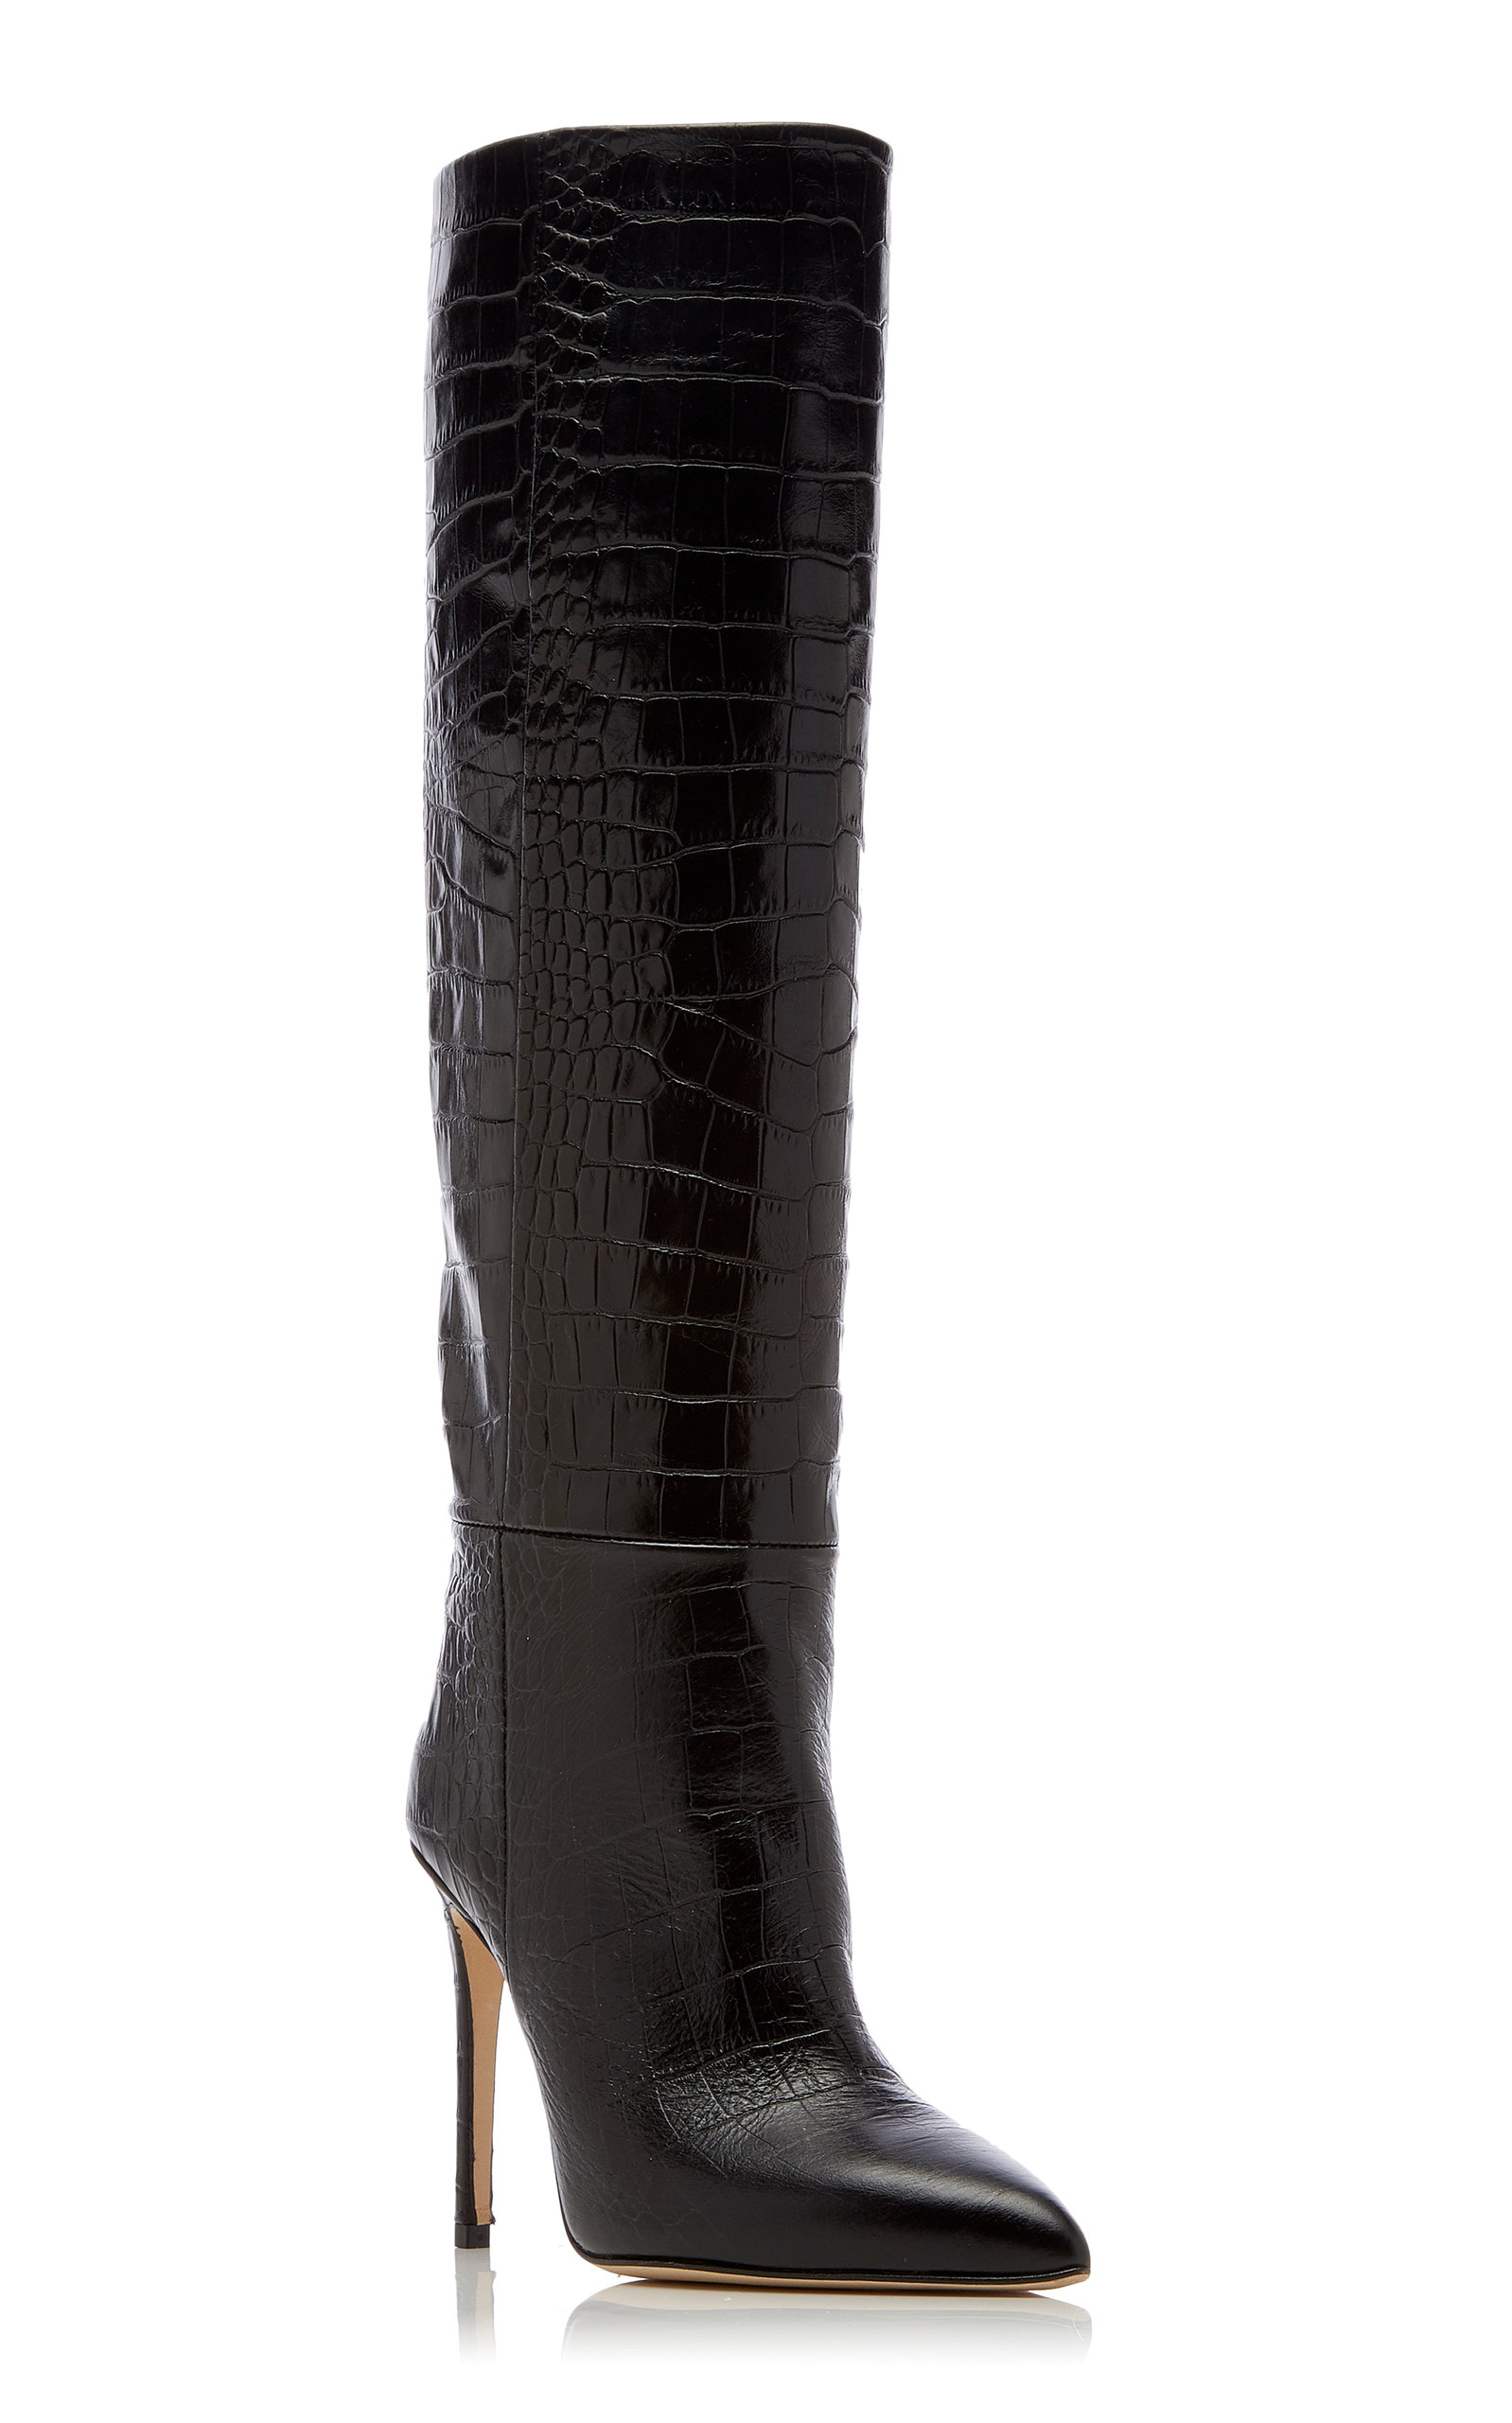 8a06959bb Paris Texas Croc-Embossed Leather Knee Boots. CLOSE. Loading. Loading.  Loading